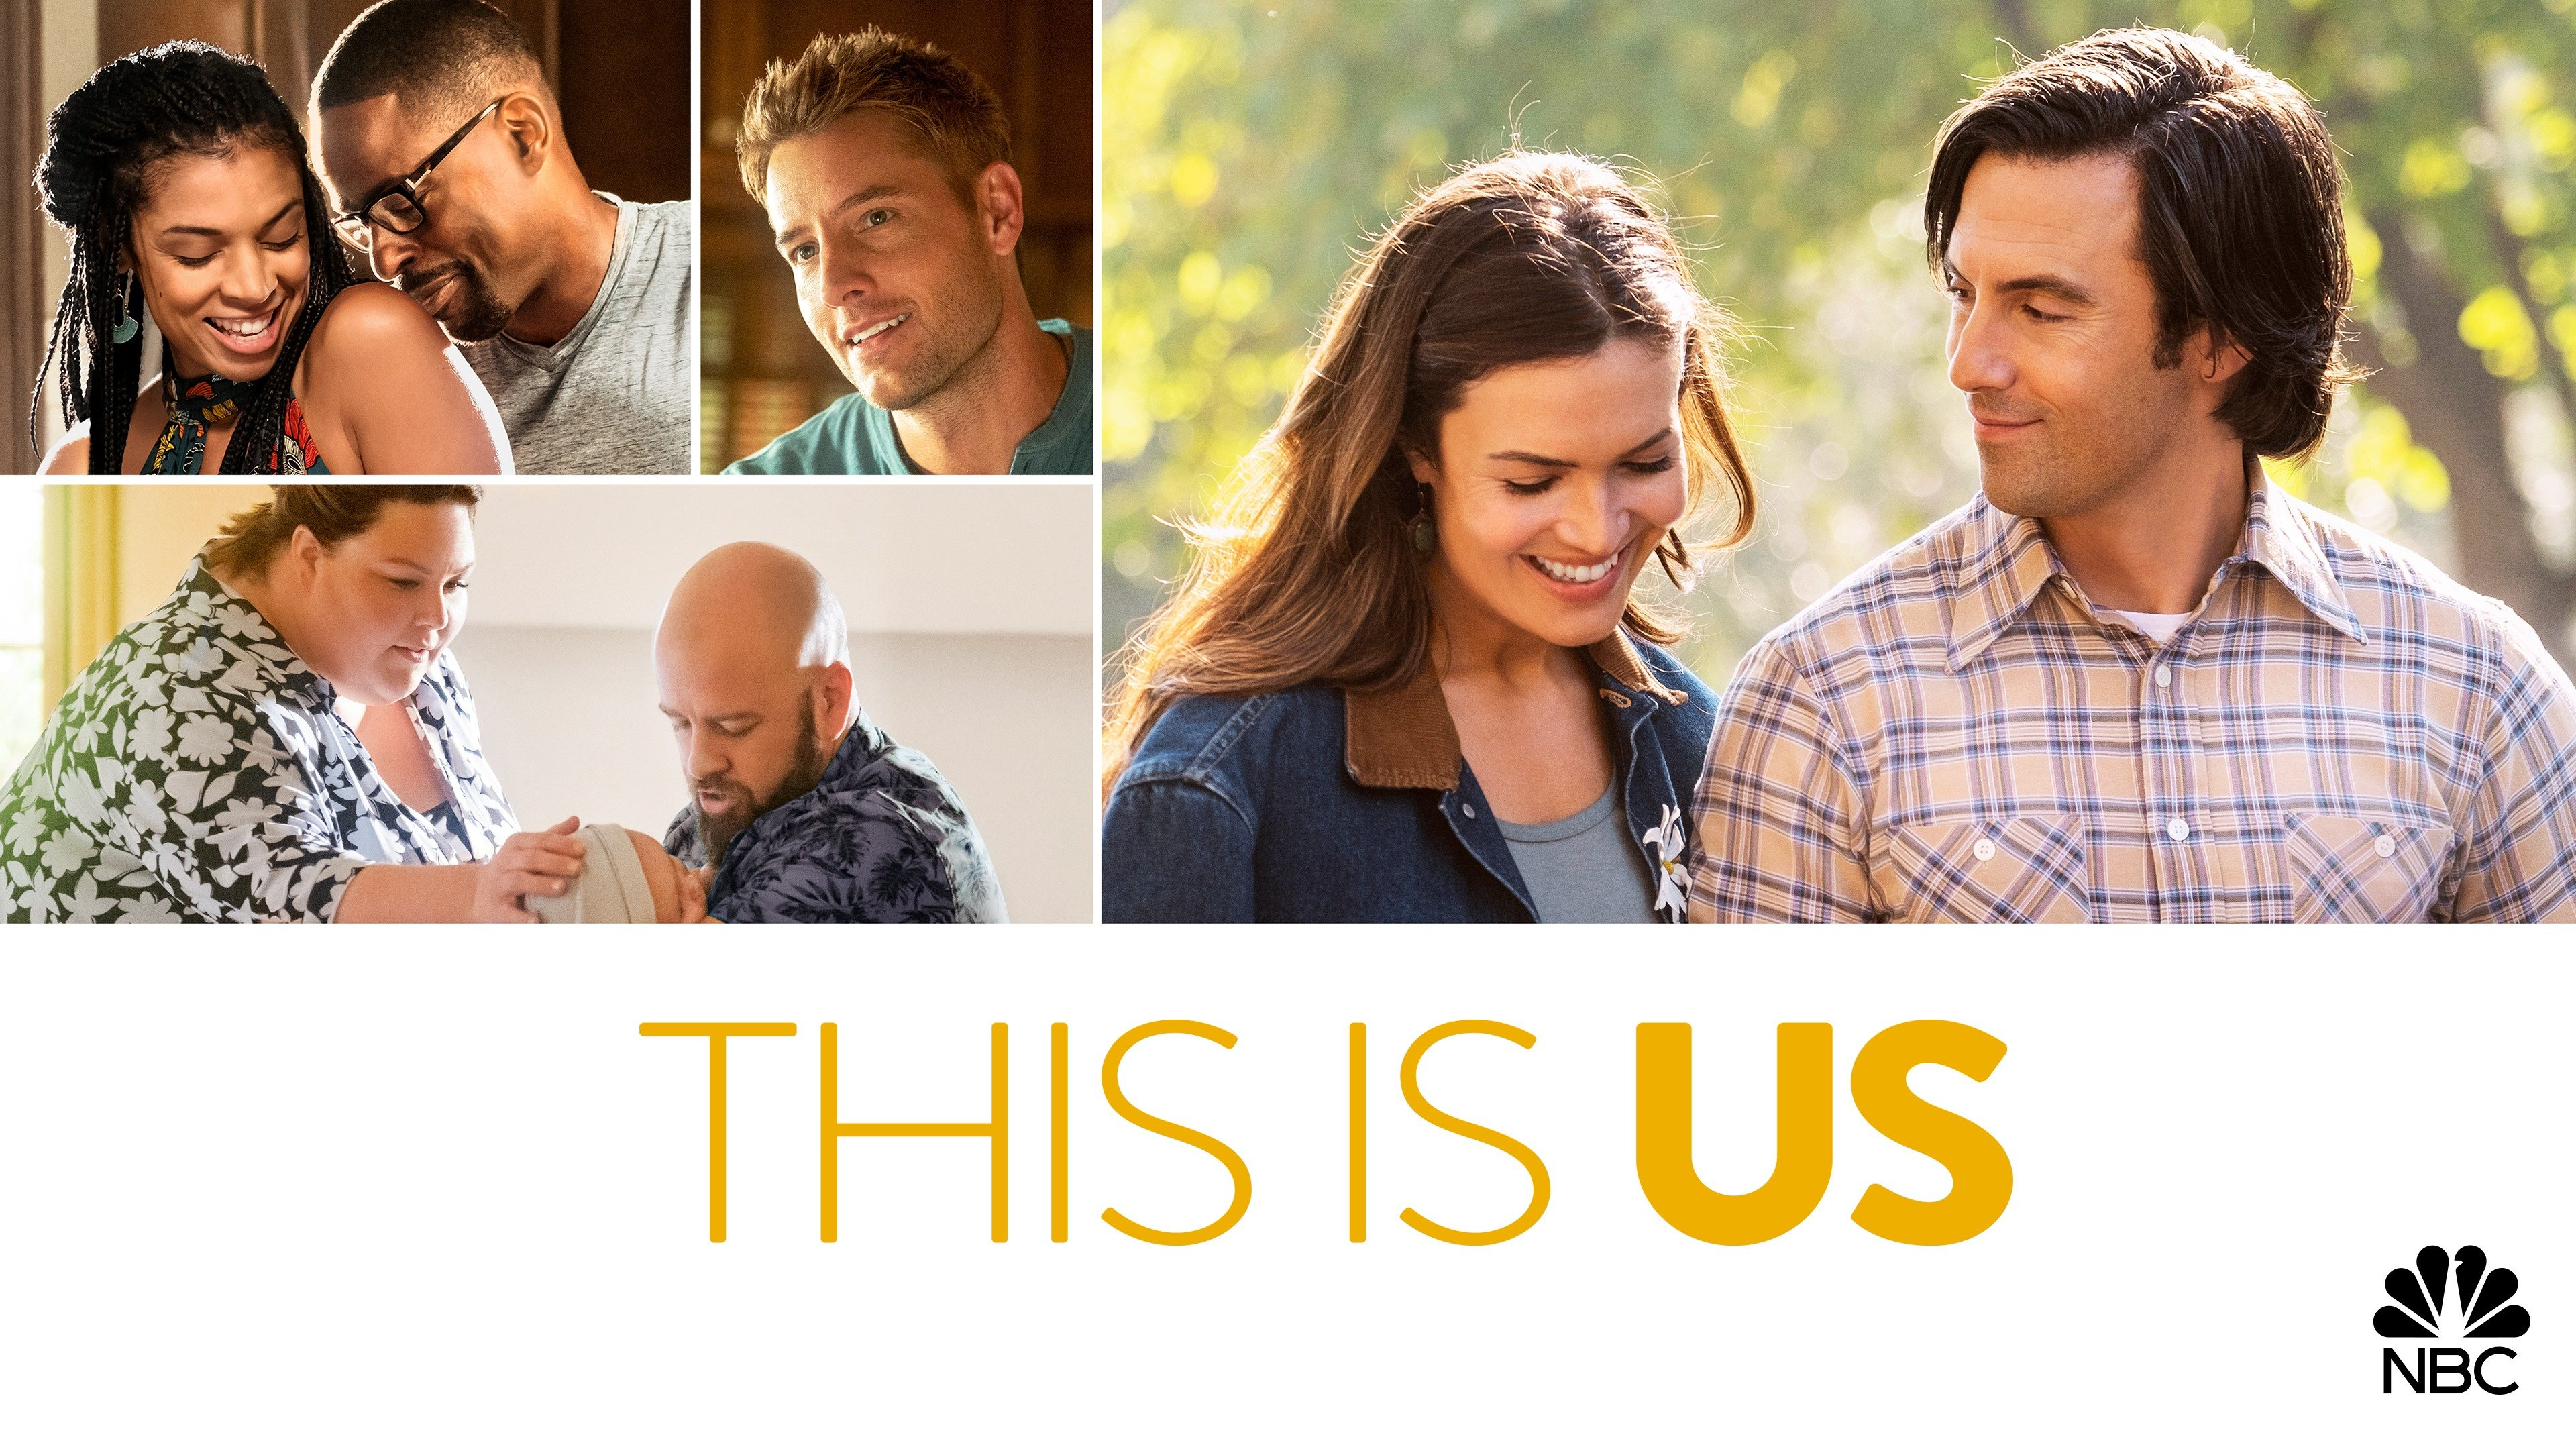 Awesome This Is Us Rotten Tomatoes Season 2 wallpapers to download for free greenvirals